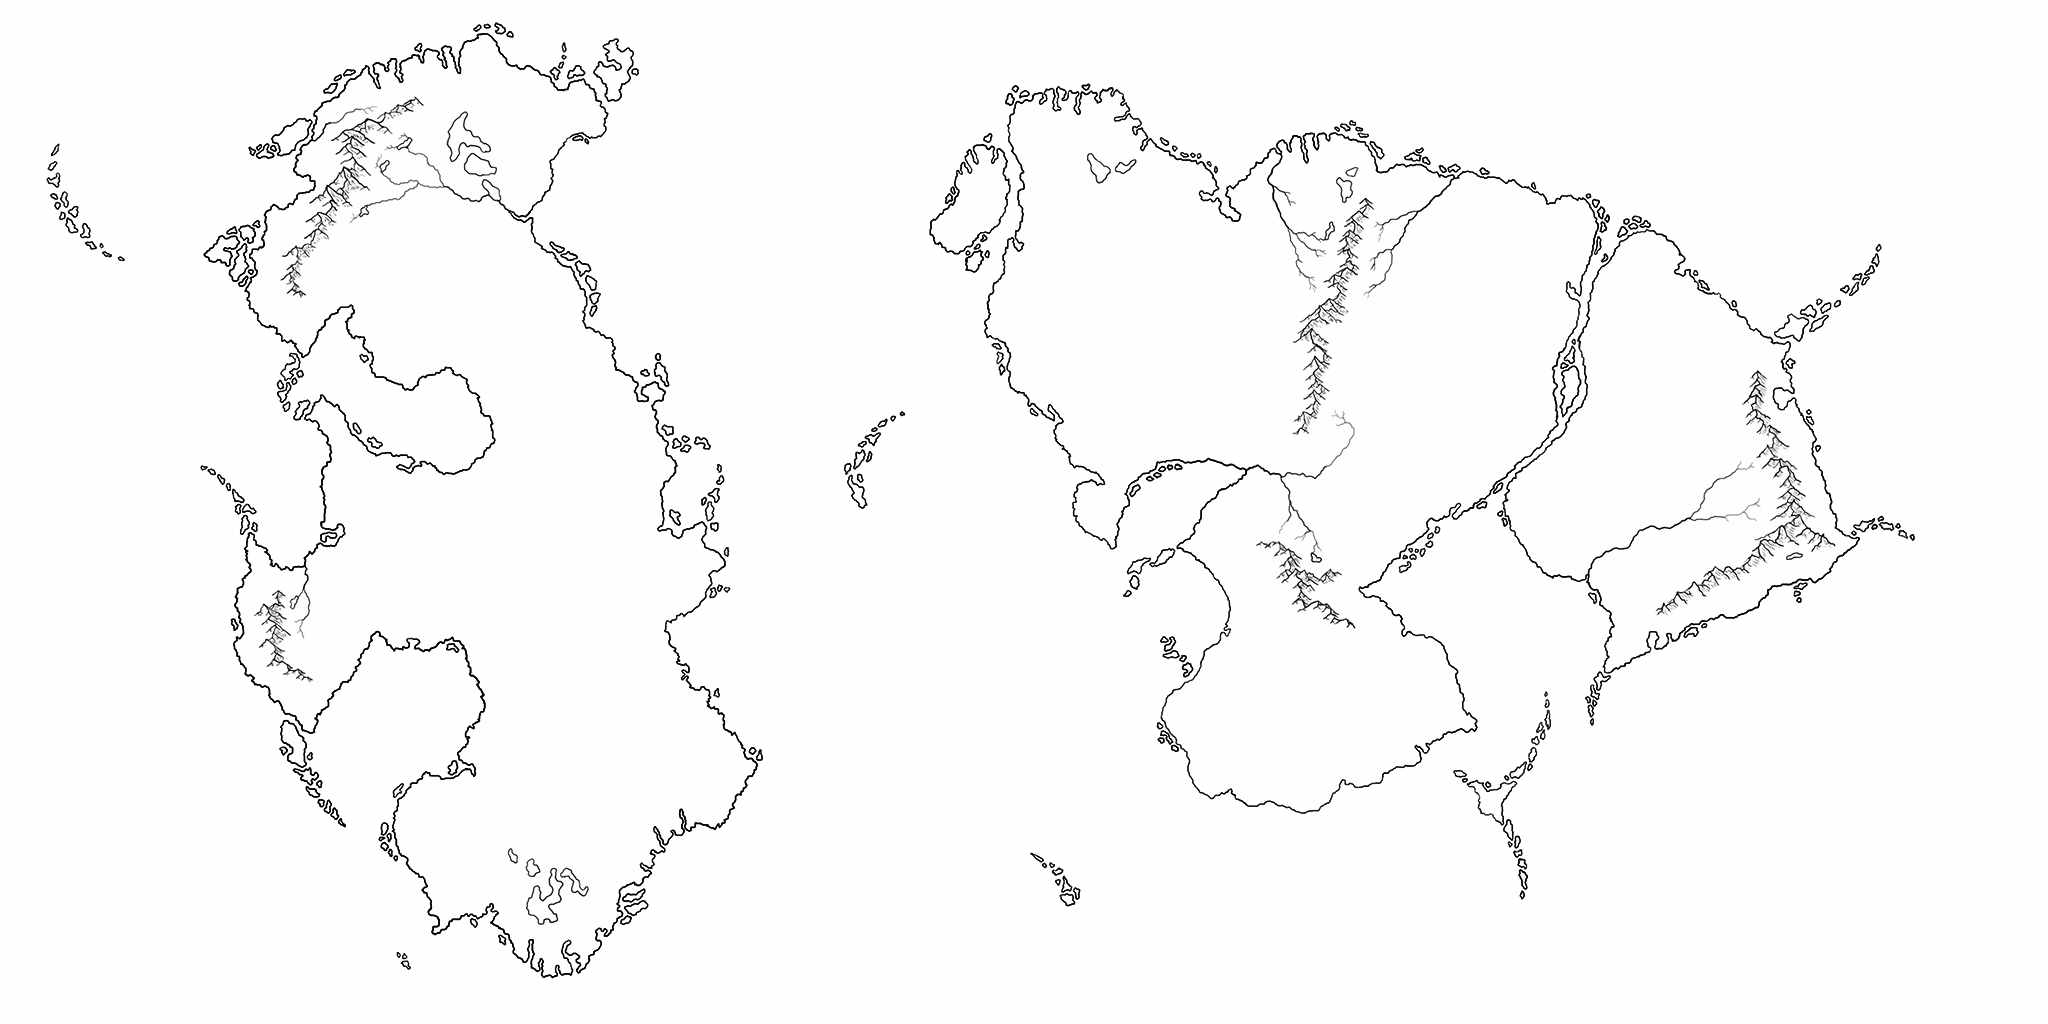 How to make a custom map for your fantasy world